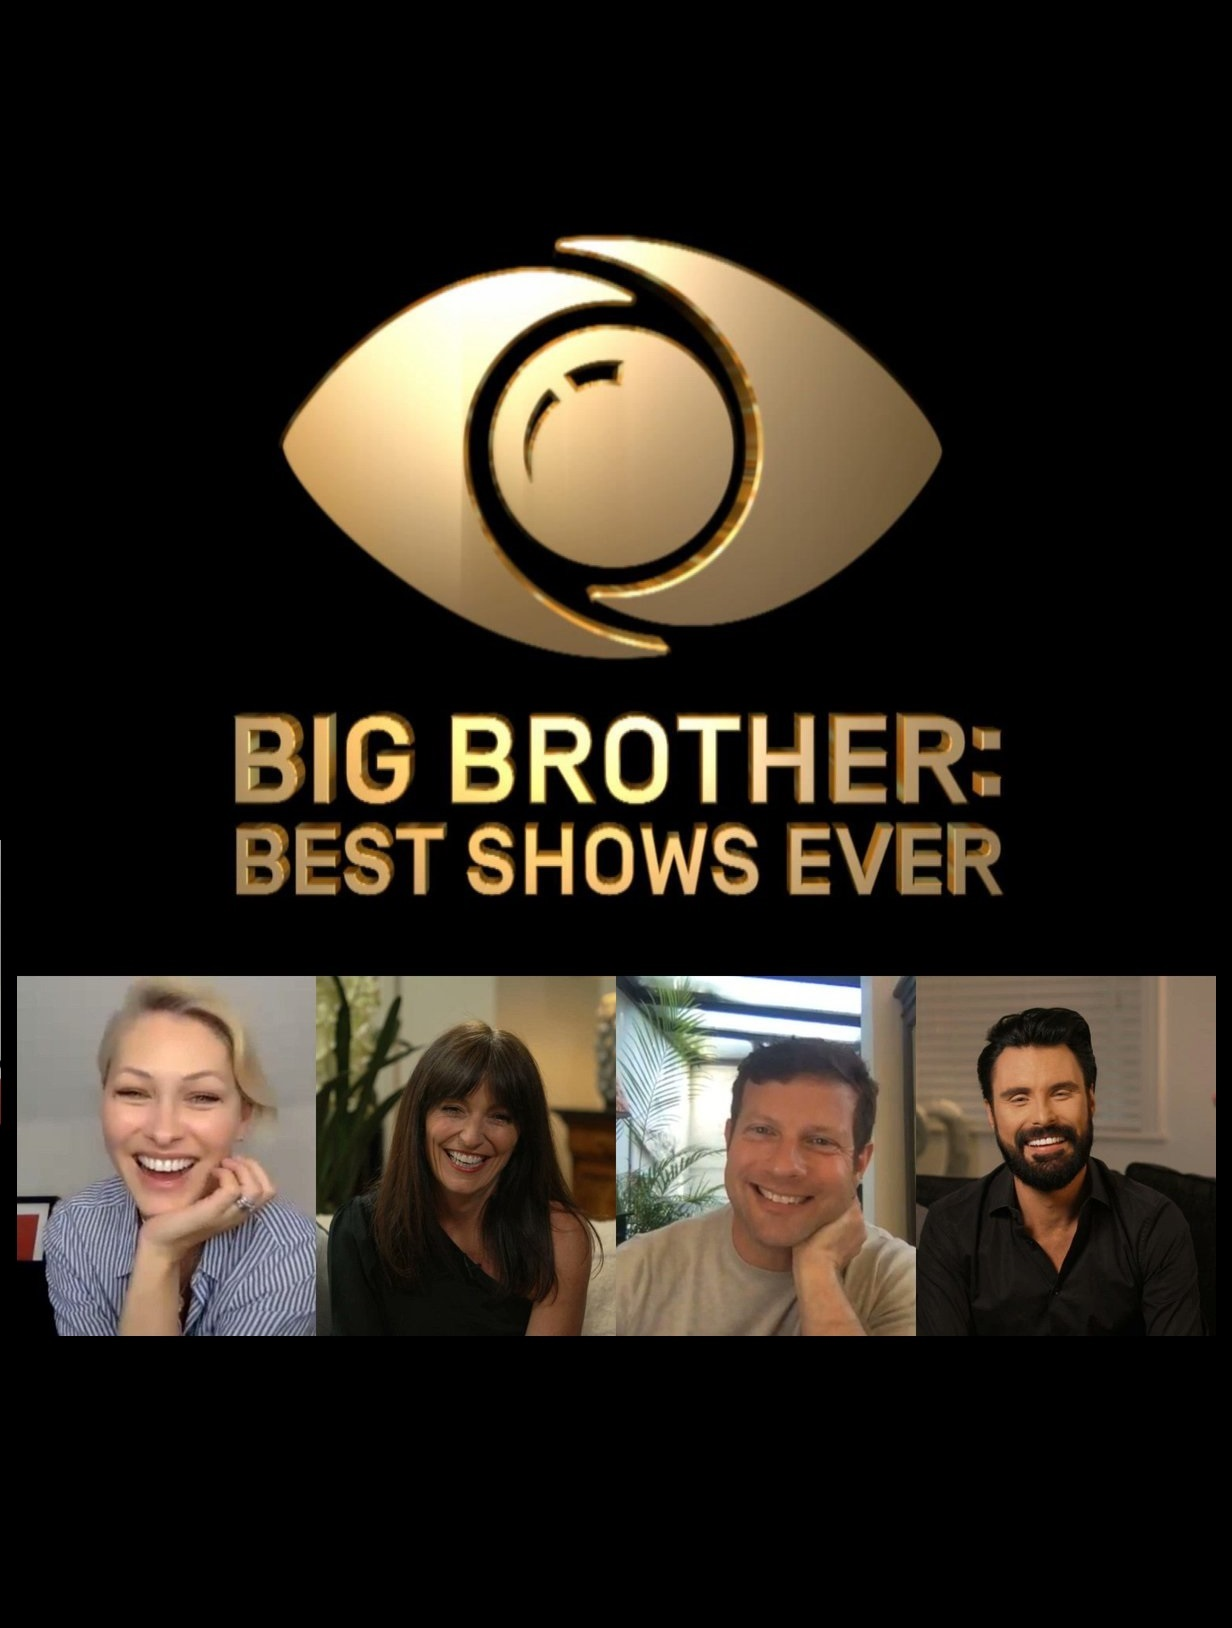 Big Brother: Best Shows Ever - Season 1 Episode 10